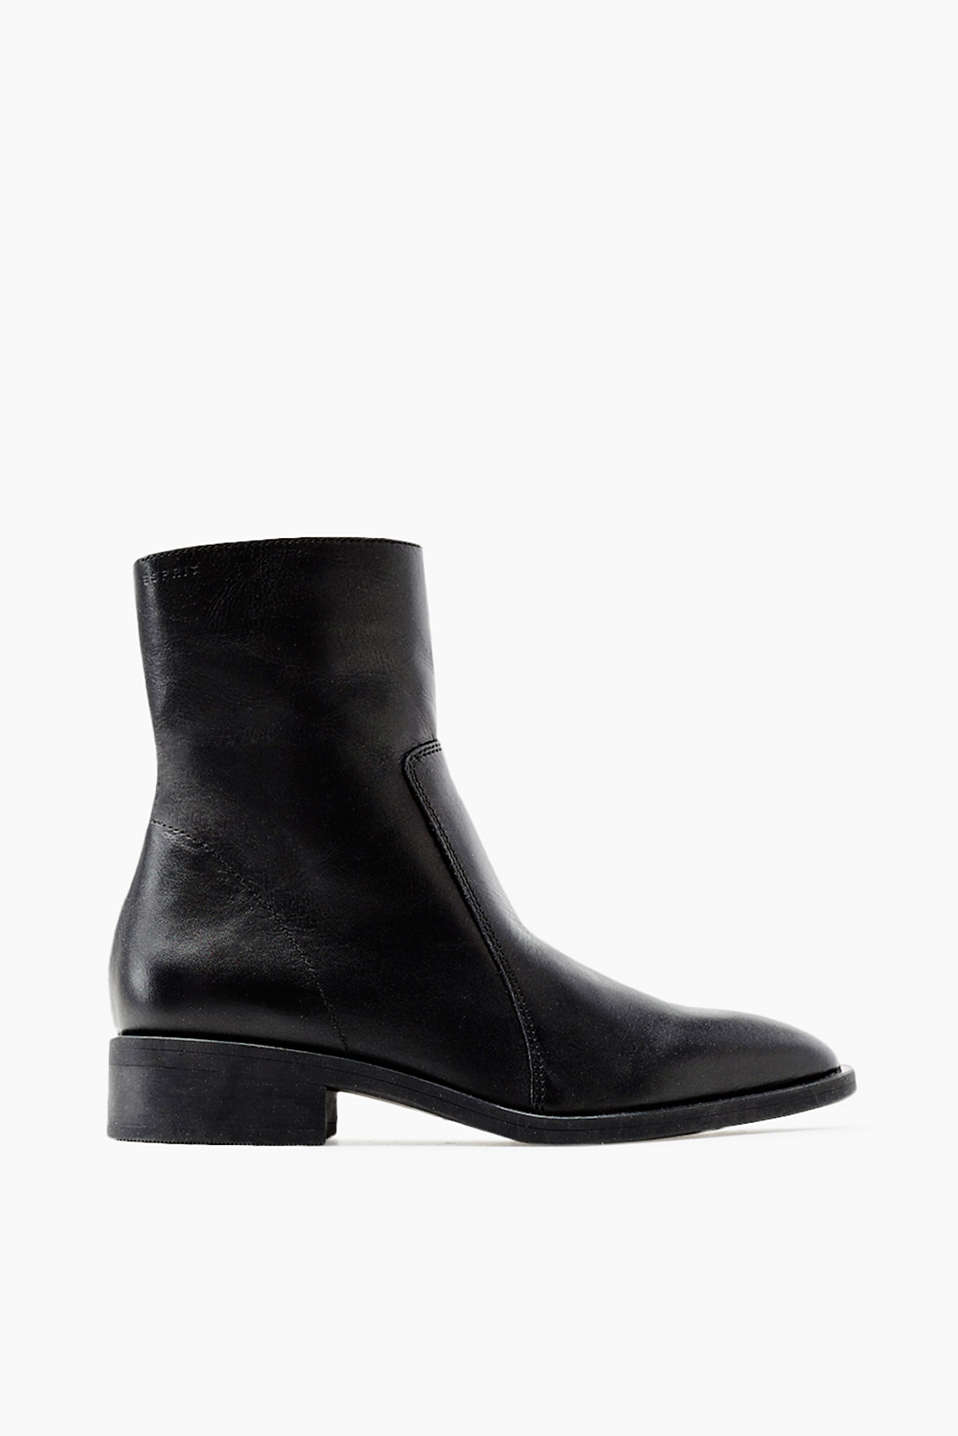 -Calf-length boots in smooth cowhide with a practical inside zip